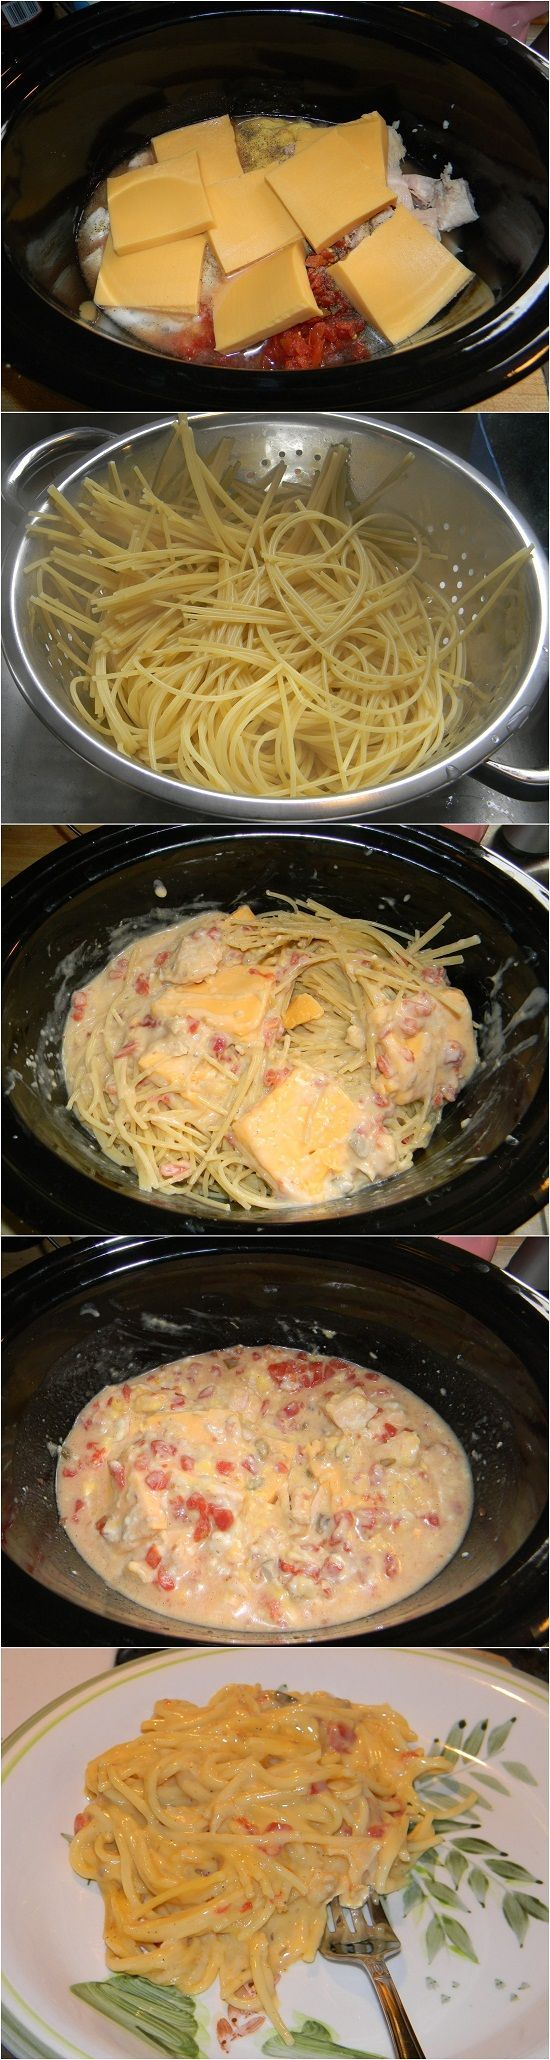 100 chicken spaghetti recipes on pinterest healthy for Healthy casserole crock pot recipes